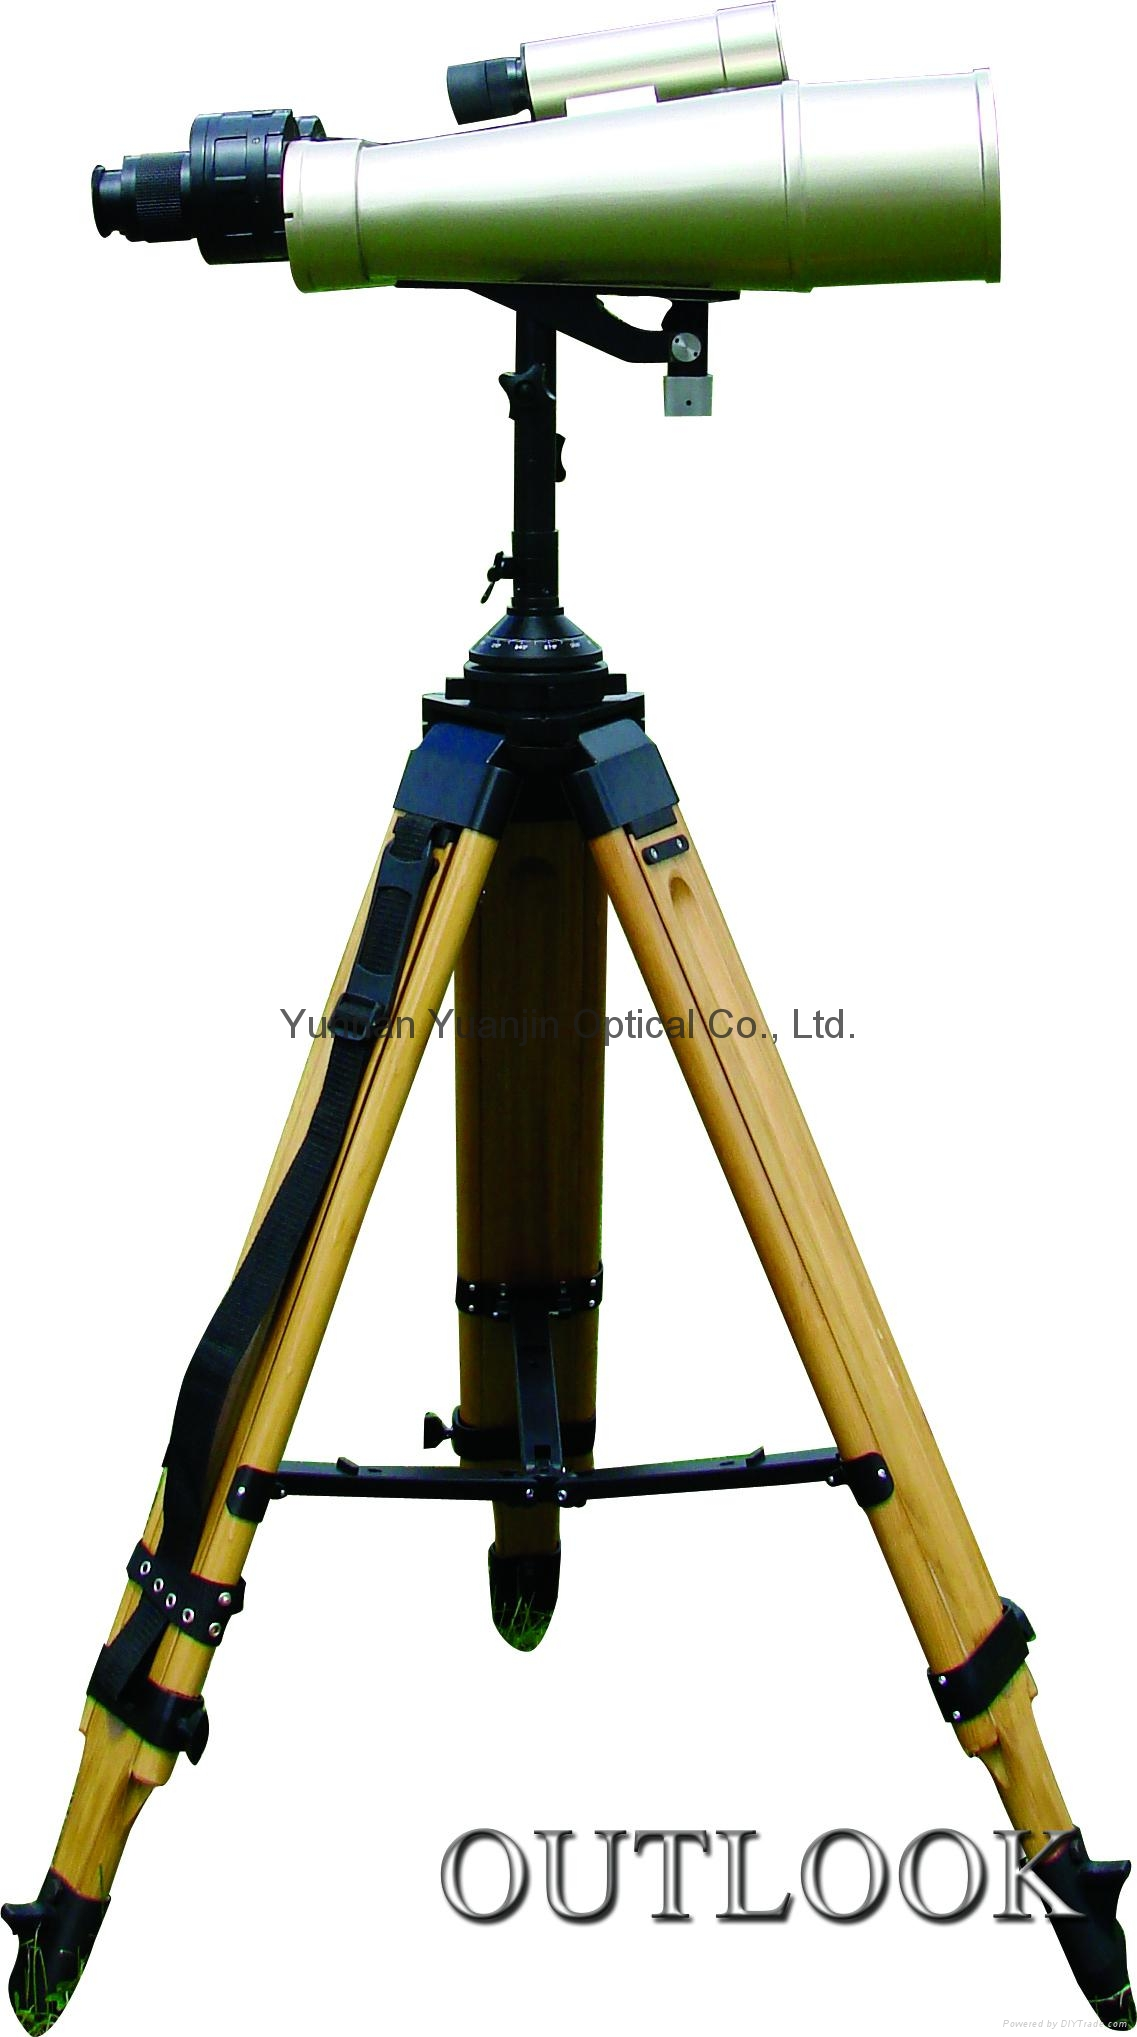 sw25-40x100 High powered telescopes